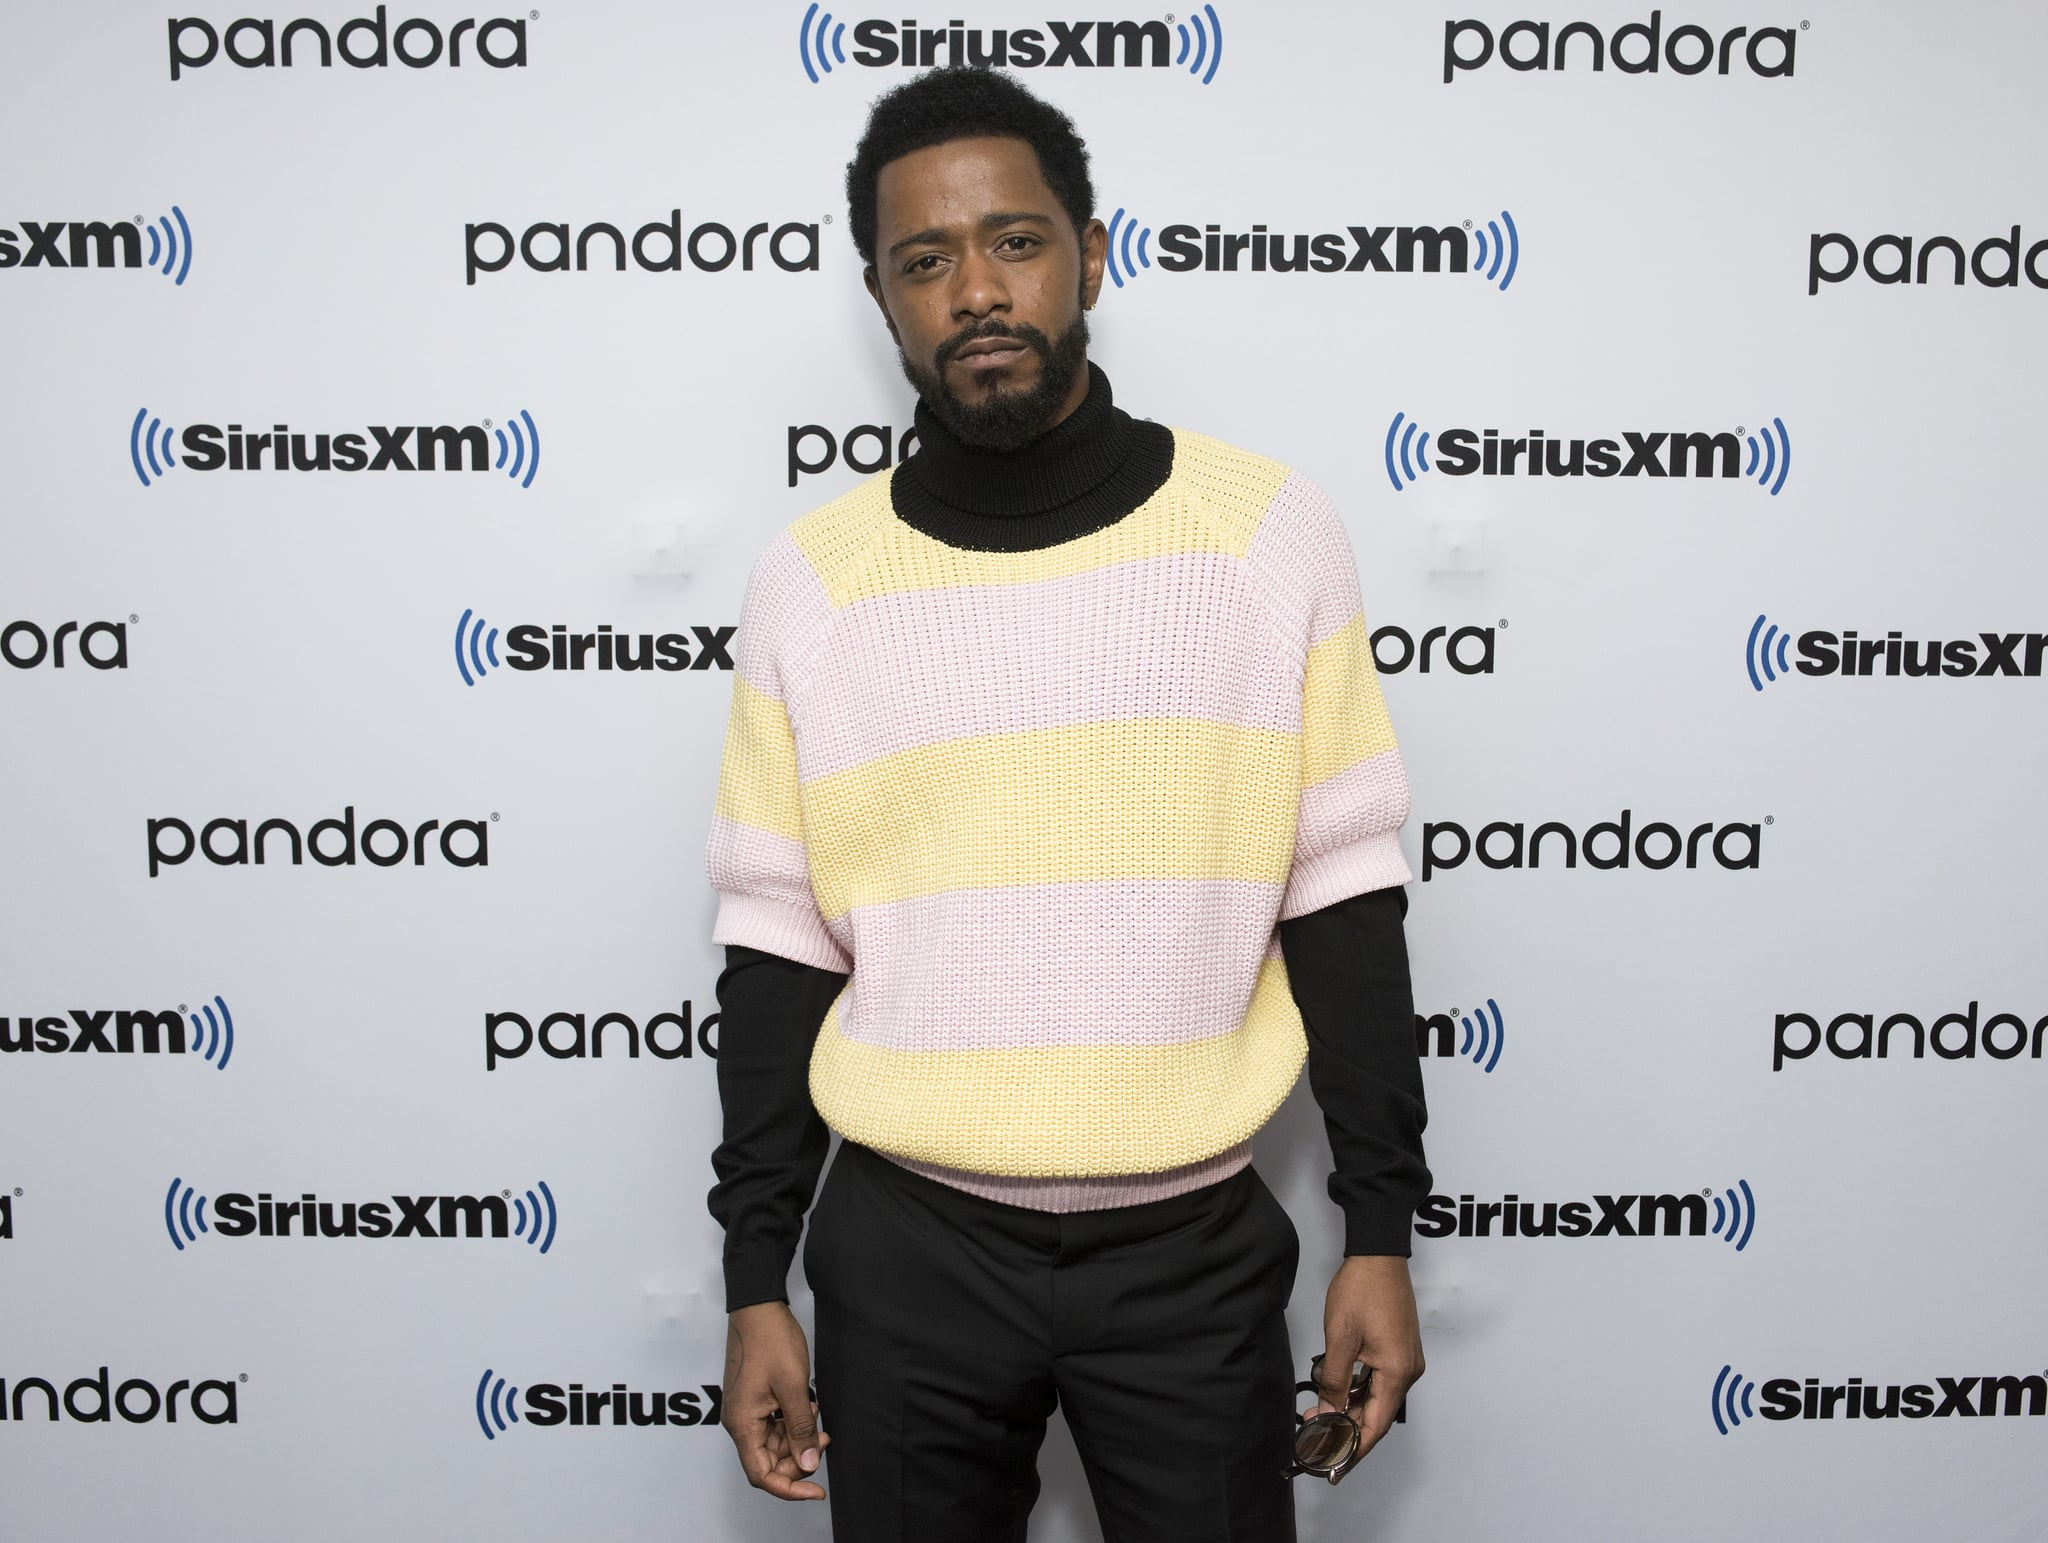 NEW YORK, NEW YORK - FEBRUARY 10: (EXCLUSIVE COVERAGE) Lakeith Stanfield visits SiriusXM Studios on February 10, 2020 in New York City. (Photo by Bonnie Biess/Getty Images)